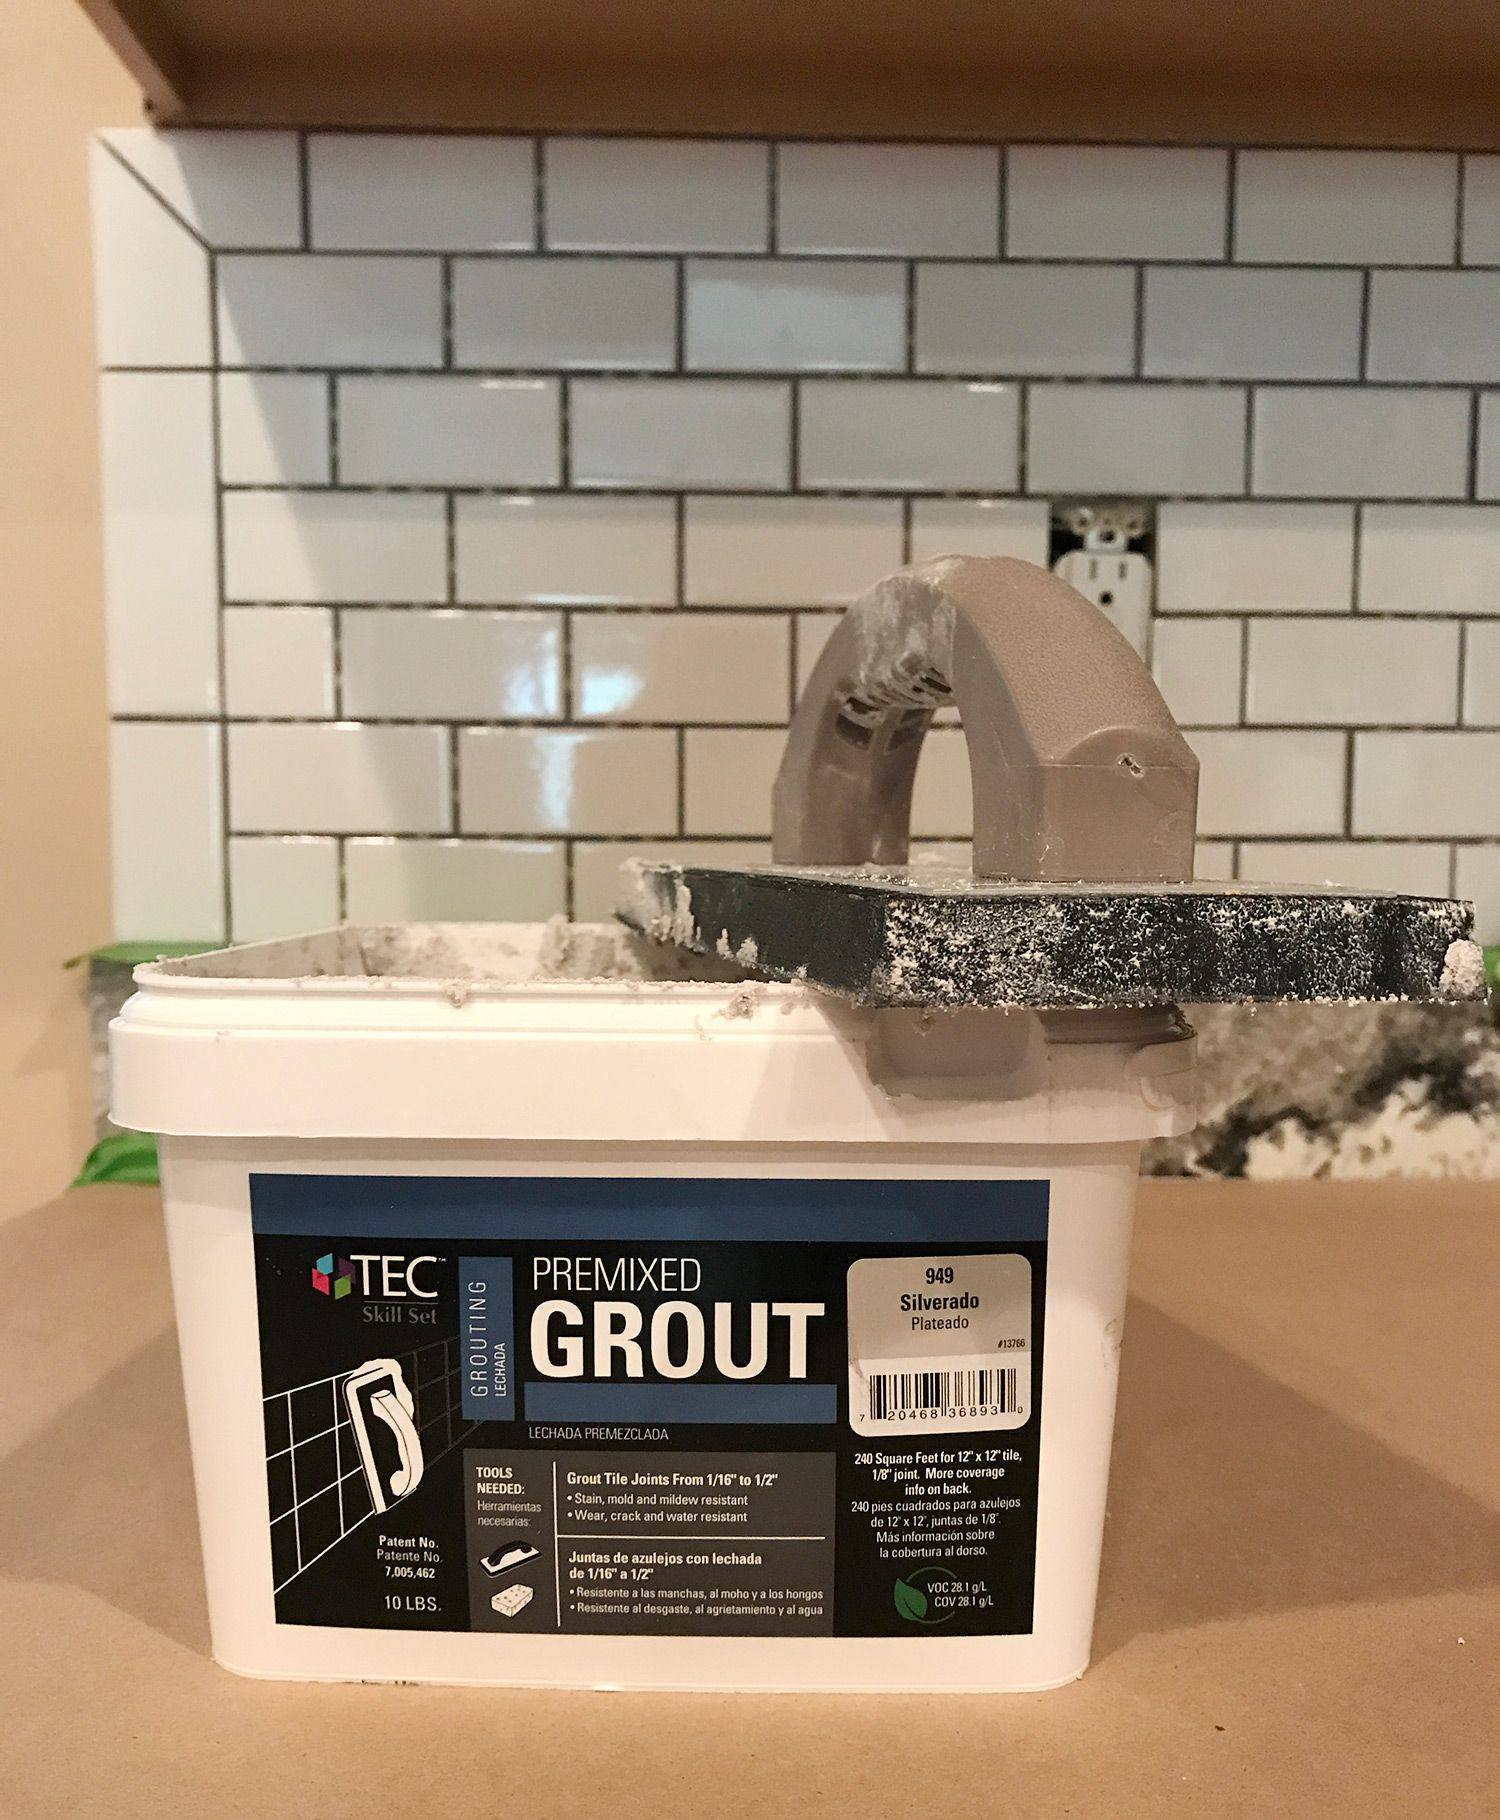 How To Install A Subway Tile Kitchen Backsplash Young House Love Subway Tile Backsplash Kitchen Kitchen Tiles Backsplash Backsplash Cheap